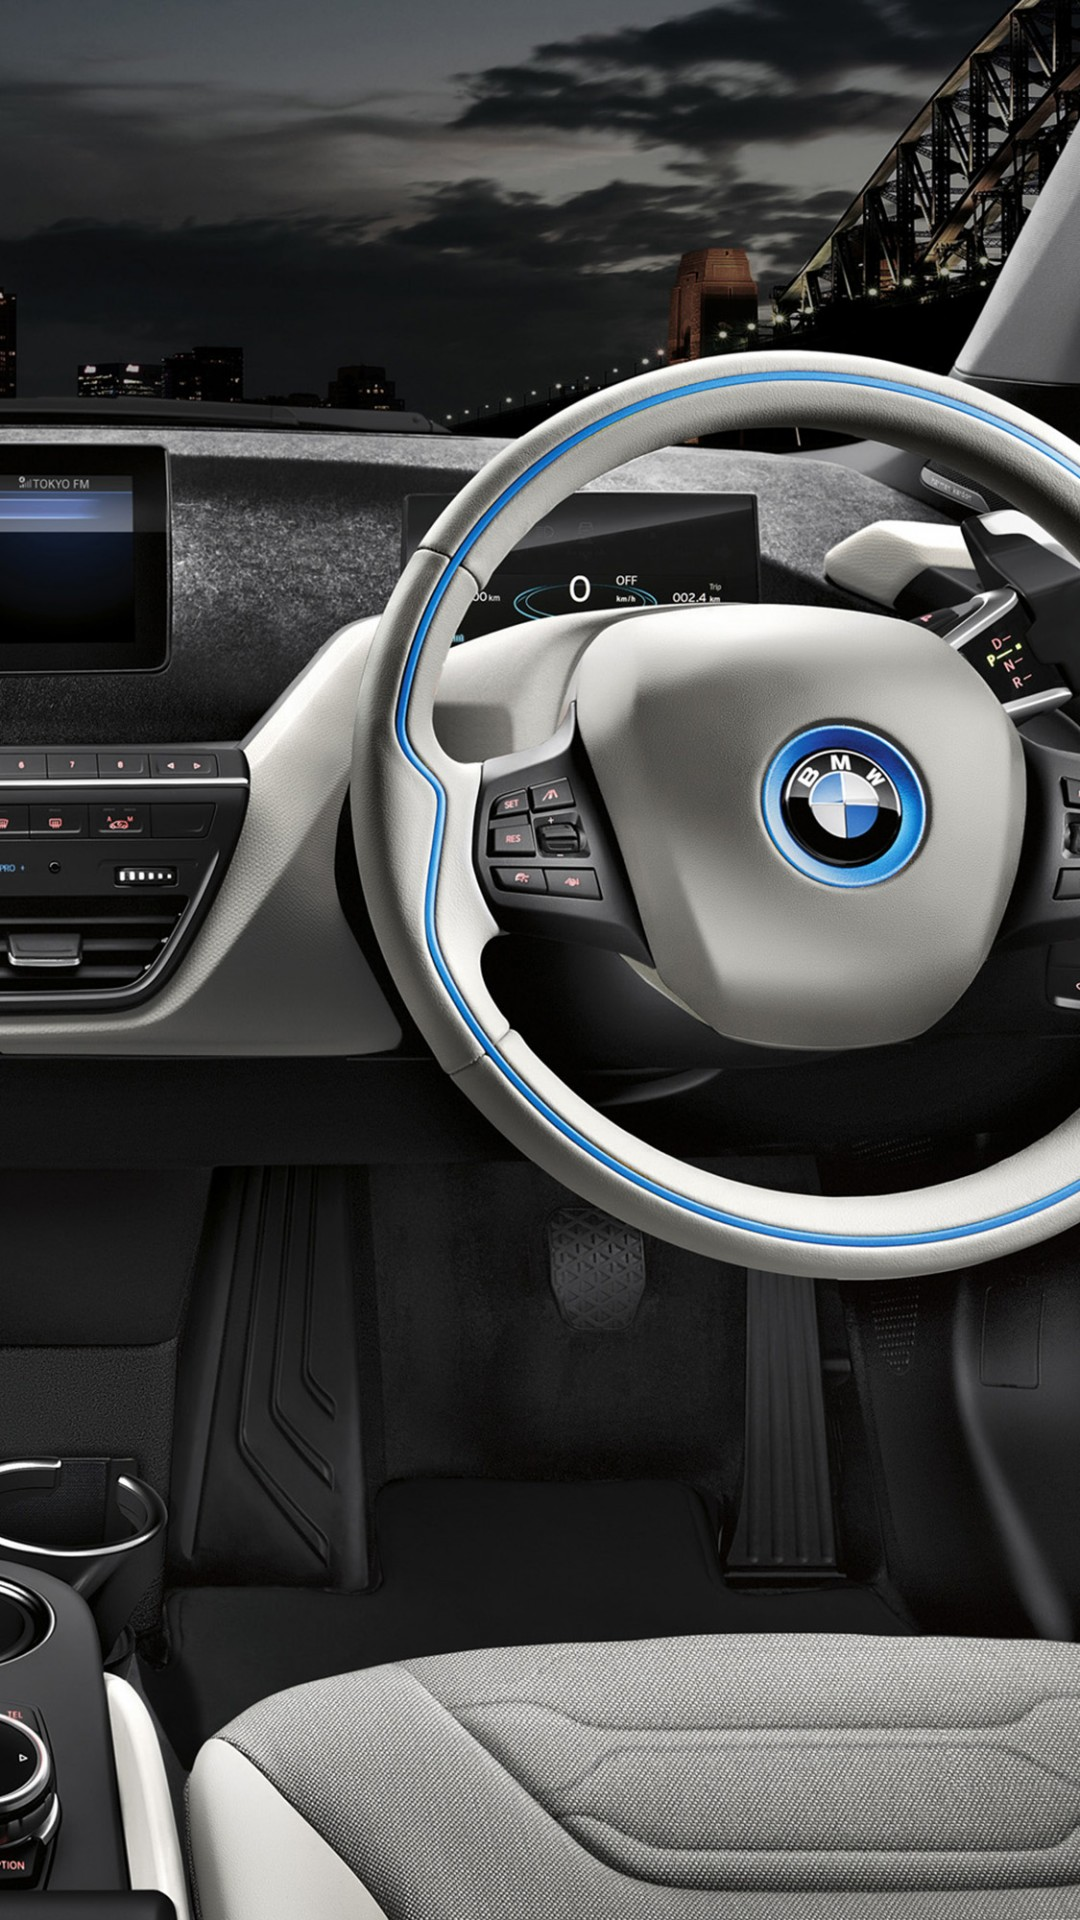 Wallpaper Bmw I3 Quot Carbonight Quot Electric Cars City Cars